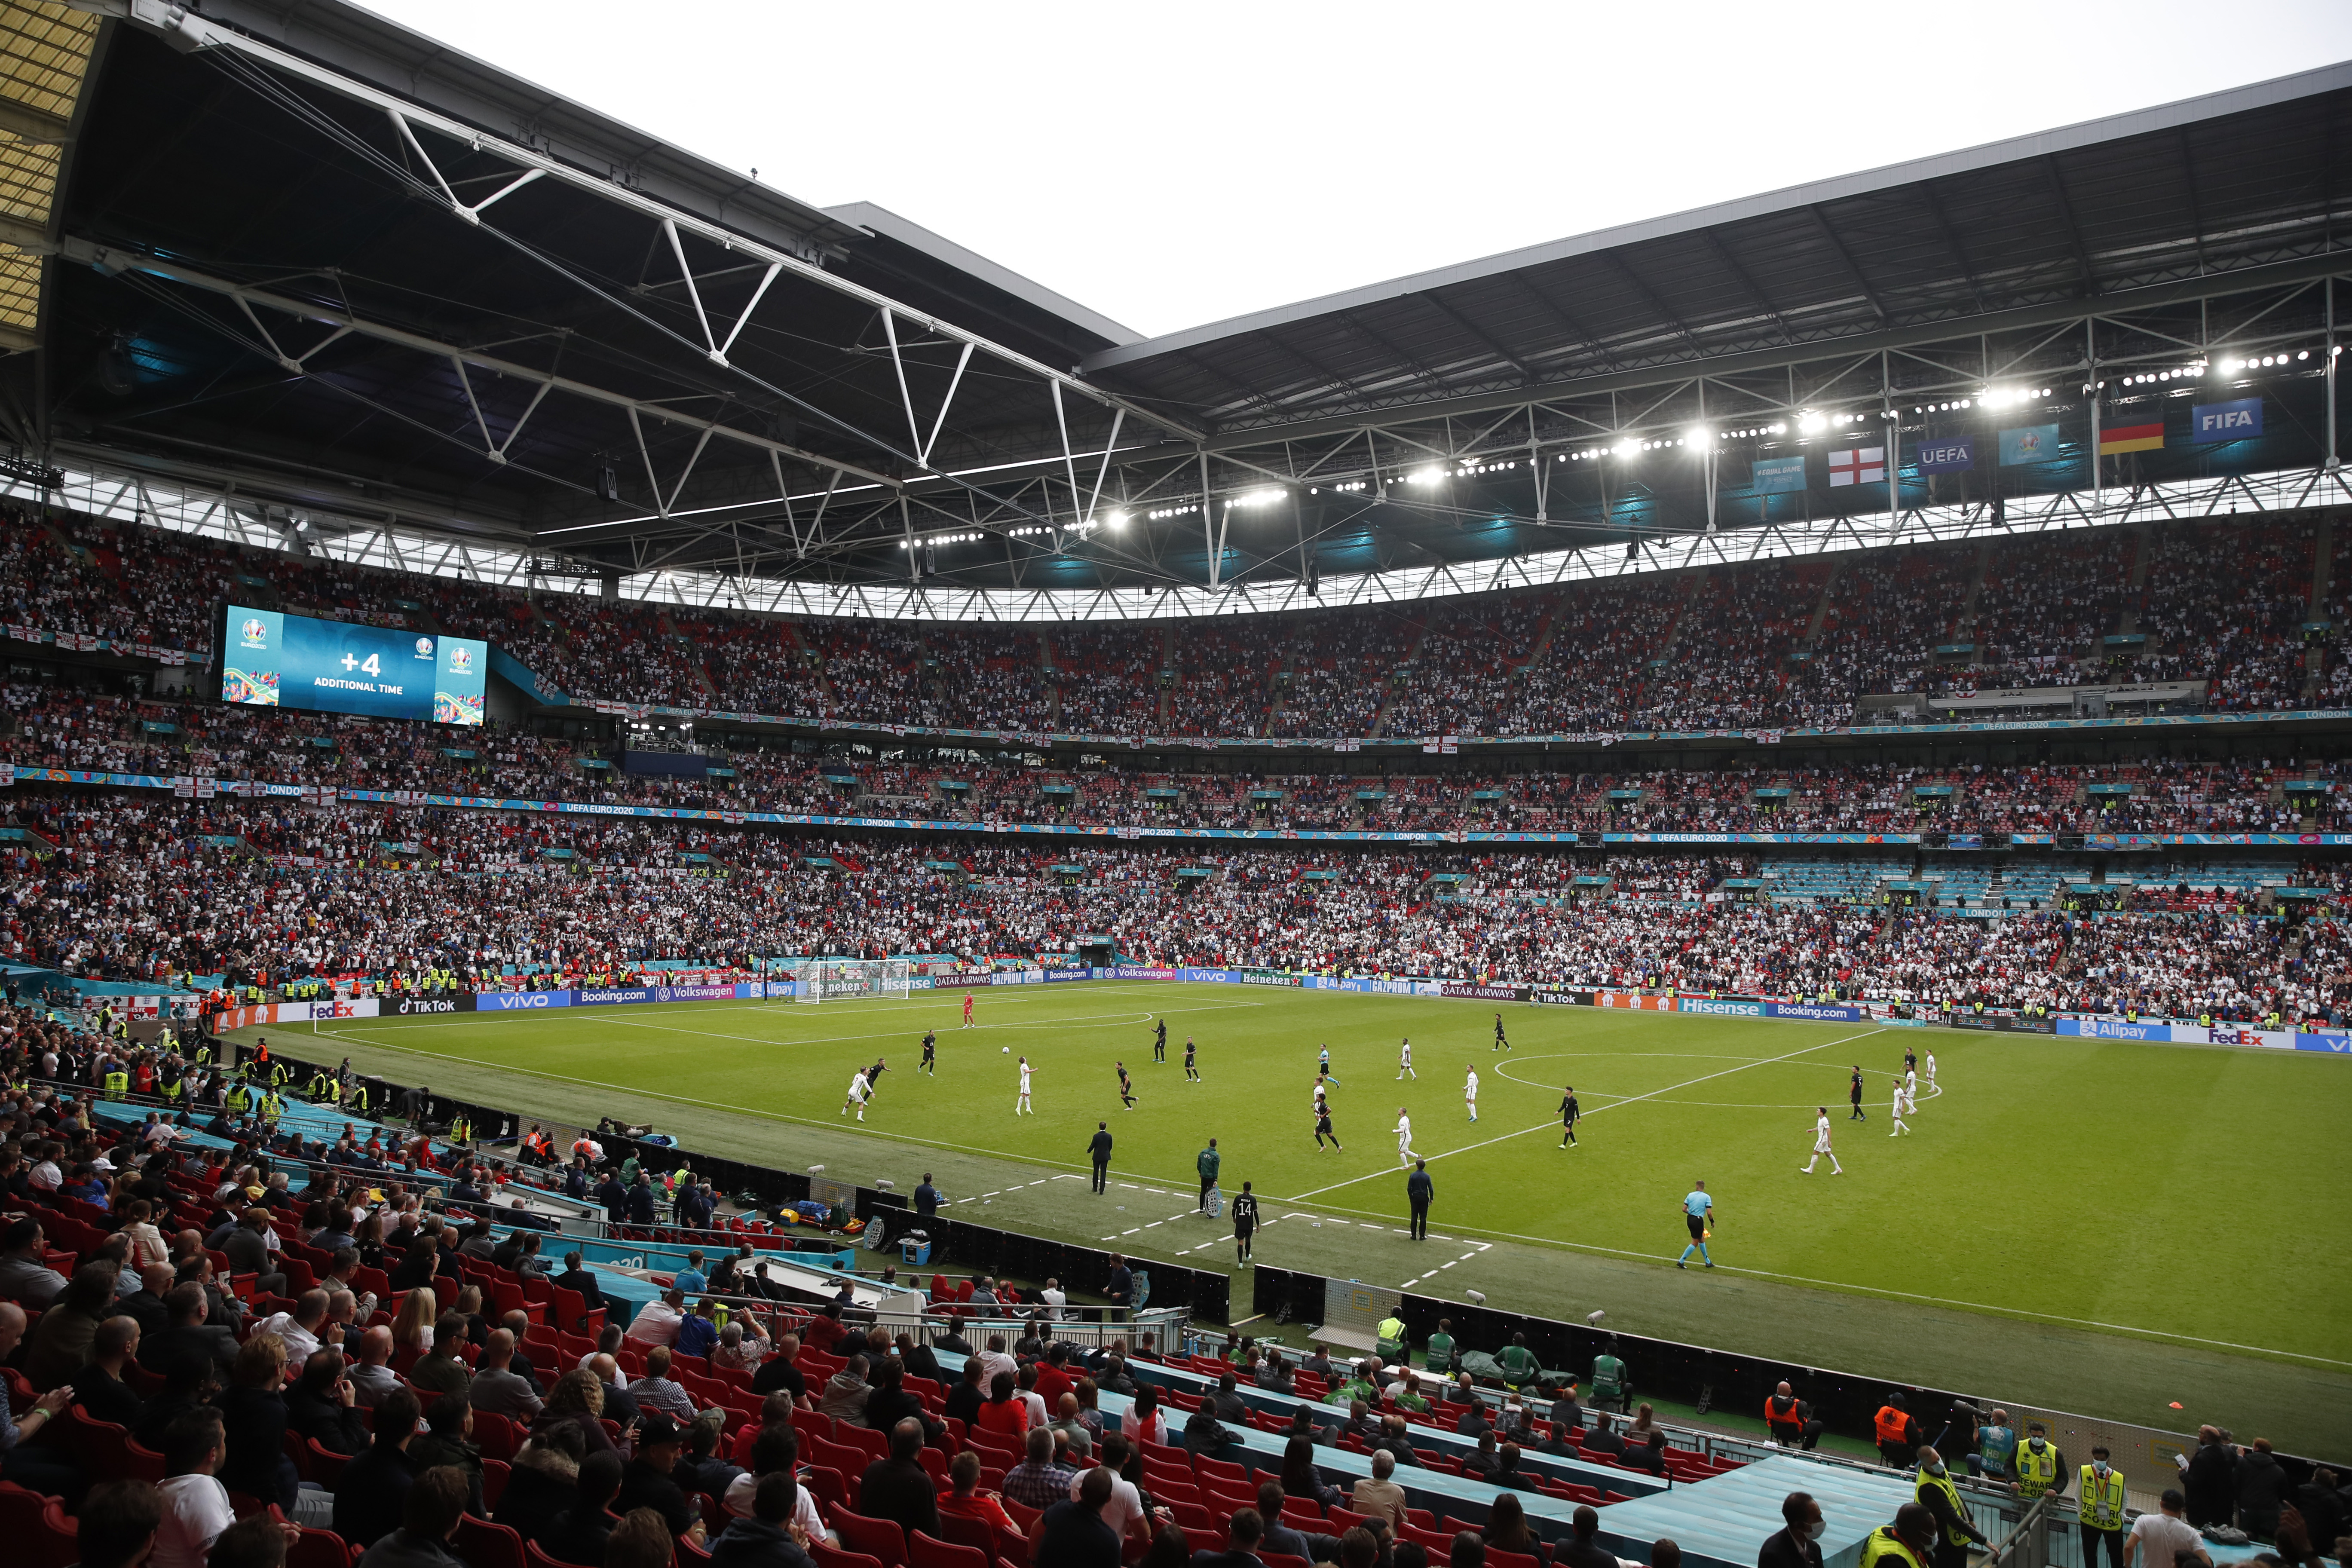 Soccer Football - Euro 2020 - Round of 16 - England v Germany - Wembley Stadium, London, Britain - June 29, 2021 General view of the action Pool via REUTERS/Matthew Childs